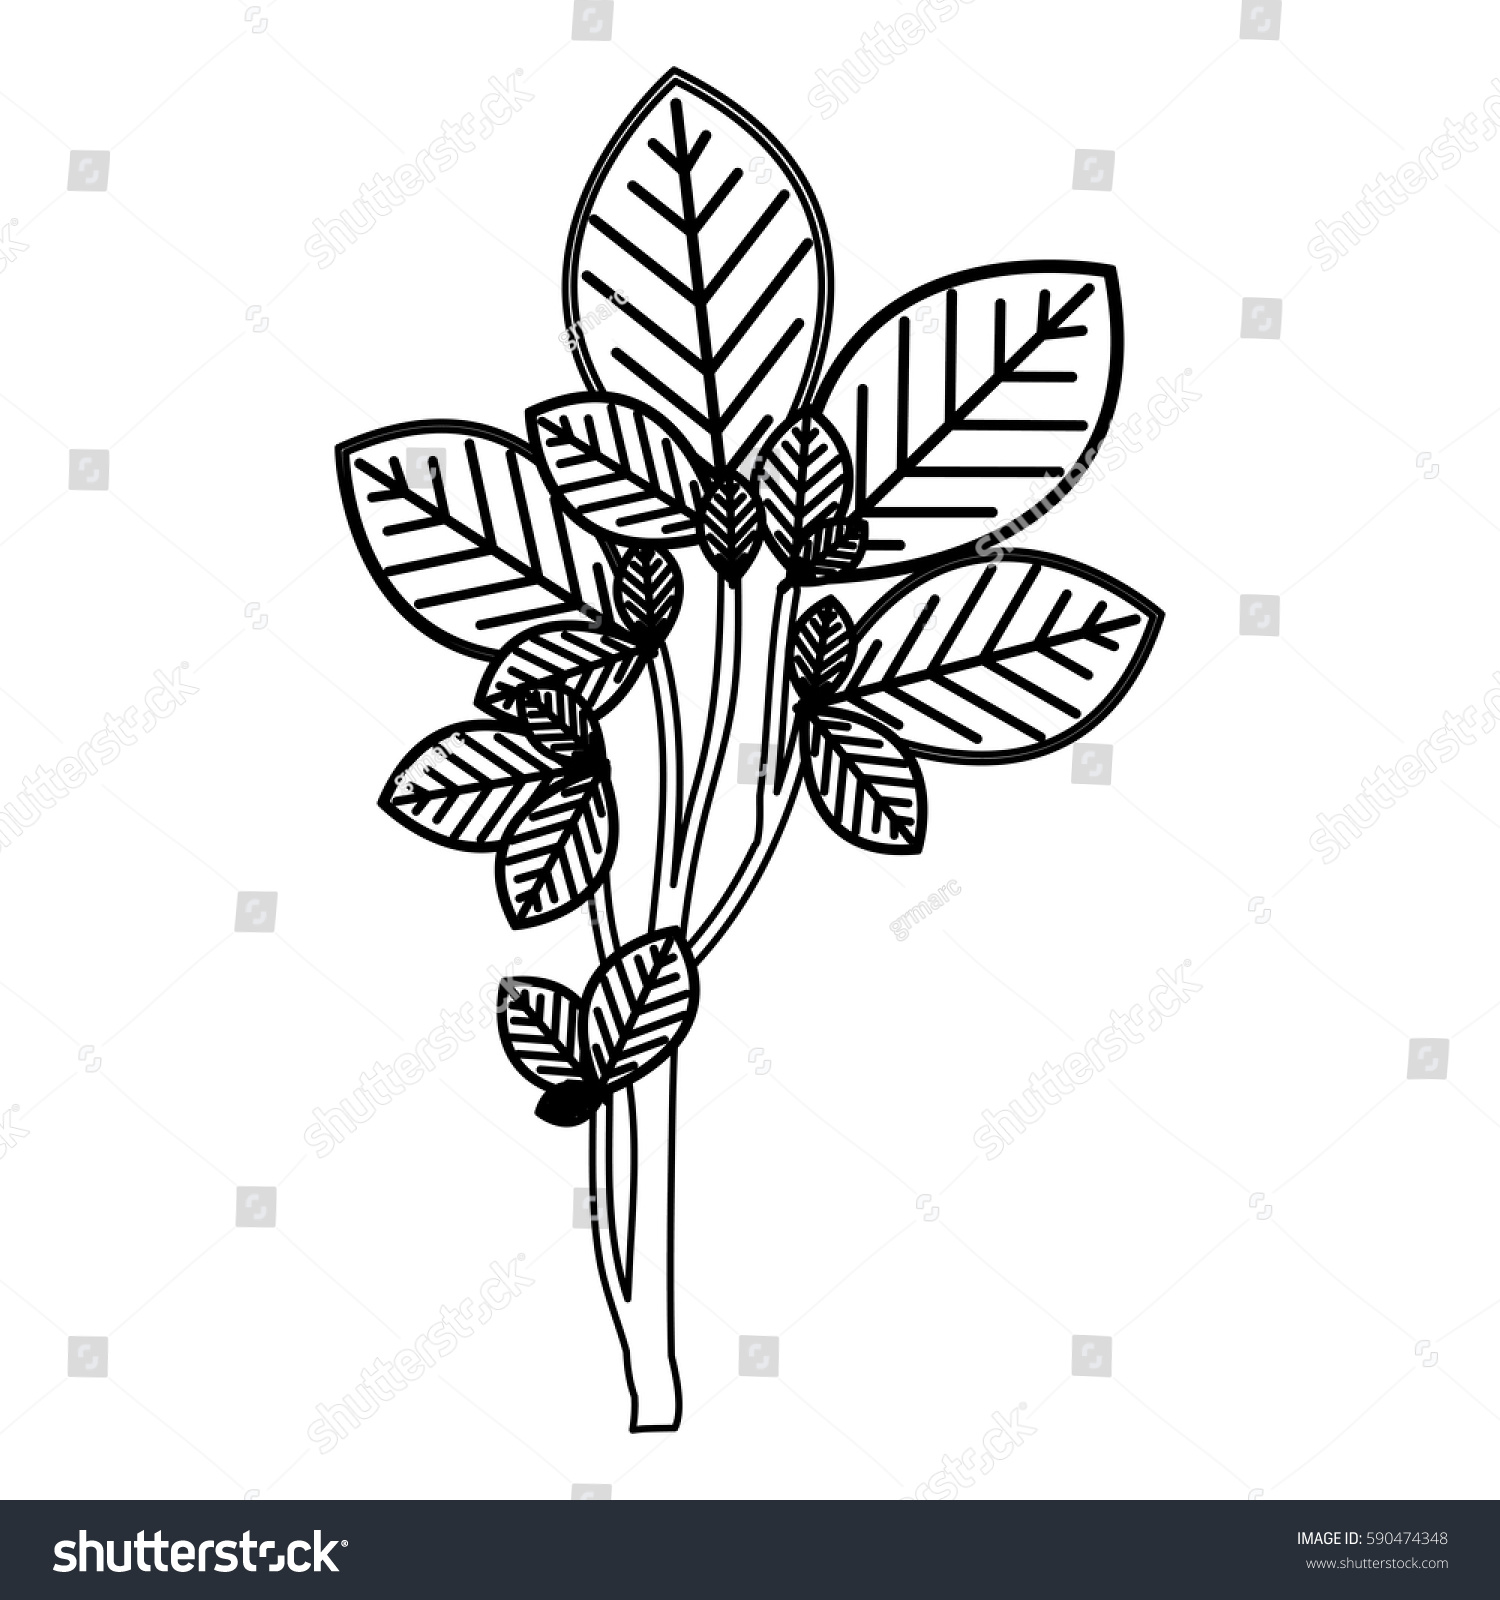 Sketch Silhouette Ramifications Oval Leaves Nature Stock Vector 590474348 - Shutterstock